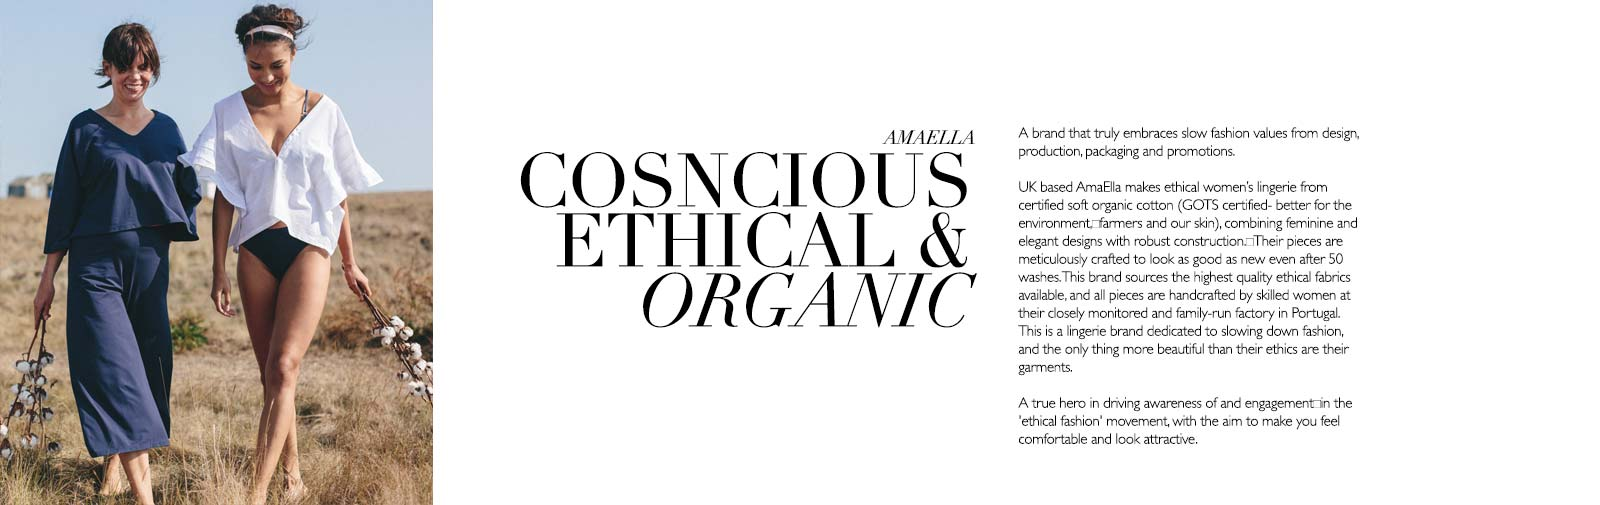 AMAELLA - CONSCIOUS ETHICAL & ORGANIC - AmaElla - A brand that truly embraces slow fashion values from design, production, packaging and promotions.   UK based AmaElla makes ethical women's lingerie from certified soft organic cotton (GOTS certified- better for the environment, farmers and our skin), combining feminine and elegant designs with robust construction. Their pieces are meticulously crafted to look as good as new even after 50 washes. This brand sources the highest quality ethical fabrics available, and all pieces are handcrafted by skilled women at their closely monitored and family-run factory in Portugal. This is a lingerie brand dedicated to slowing down fashion, and the only thing more beautiful than their ethics are their garments.   A true hero in driving awareness of and engagement in the 'ethical fashion' movement, with the aim to make you feel comfortable and look attractive.